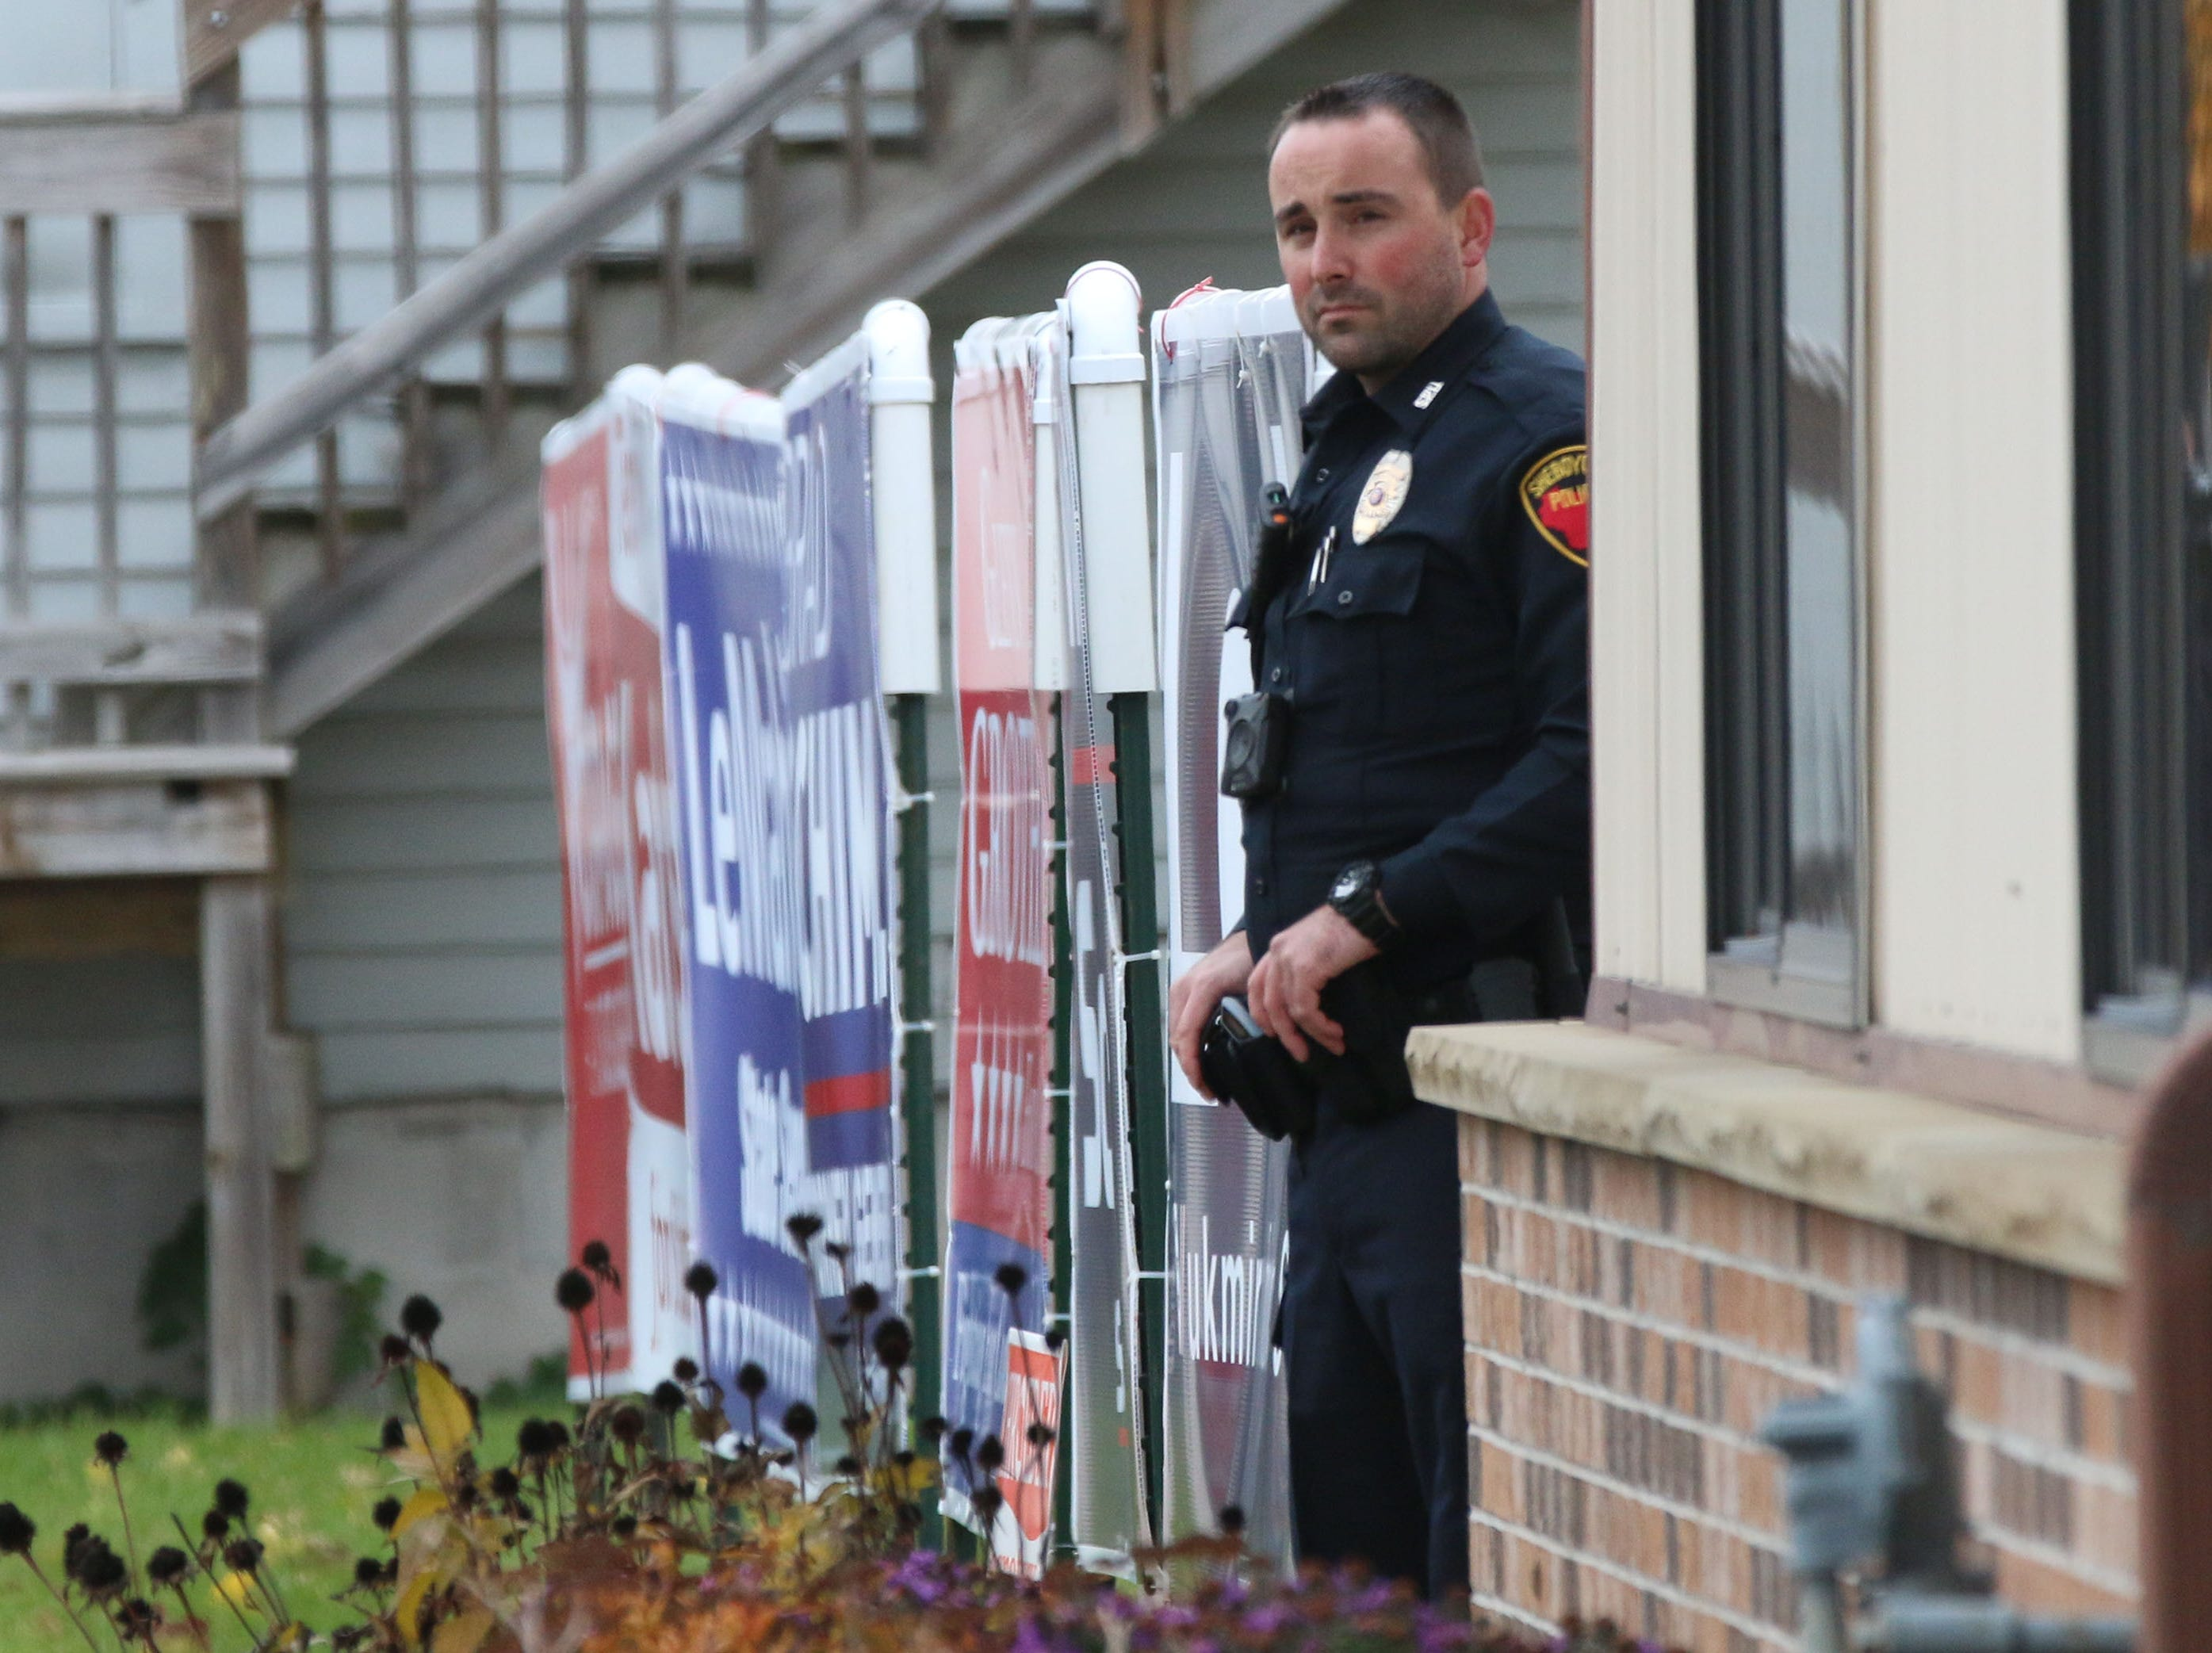 A Sheboygan police officer stands outside of the GOP headquarters while waiting for a Republican campaign rally to end, Tuesday, October 30, 2018, in Sheboygan, Wis. Eric Trump came to Sheboygan to help Wisconsin Republicans.